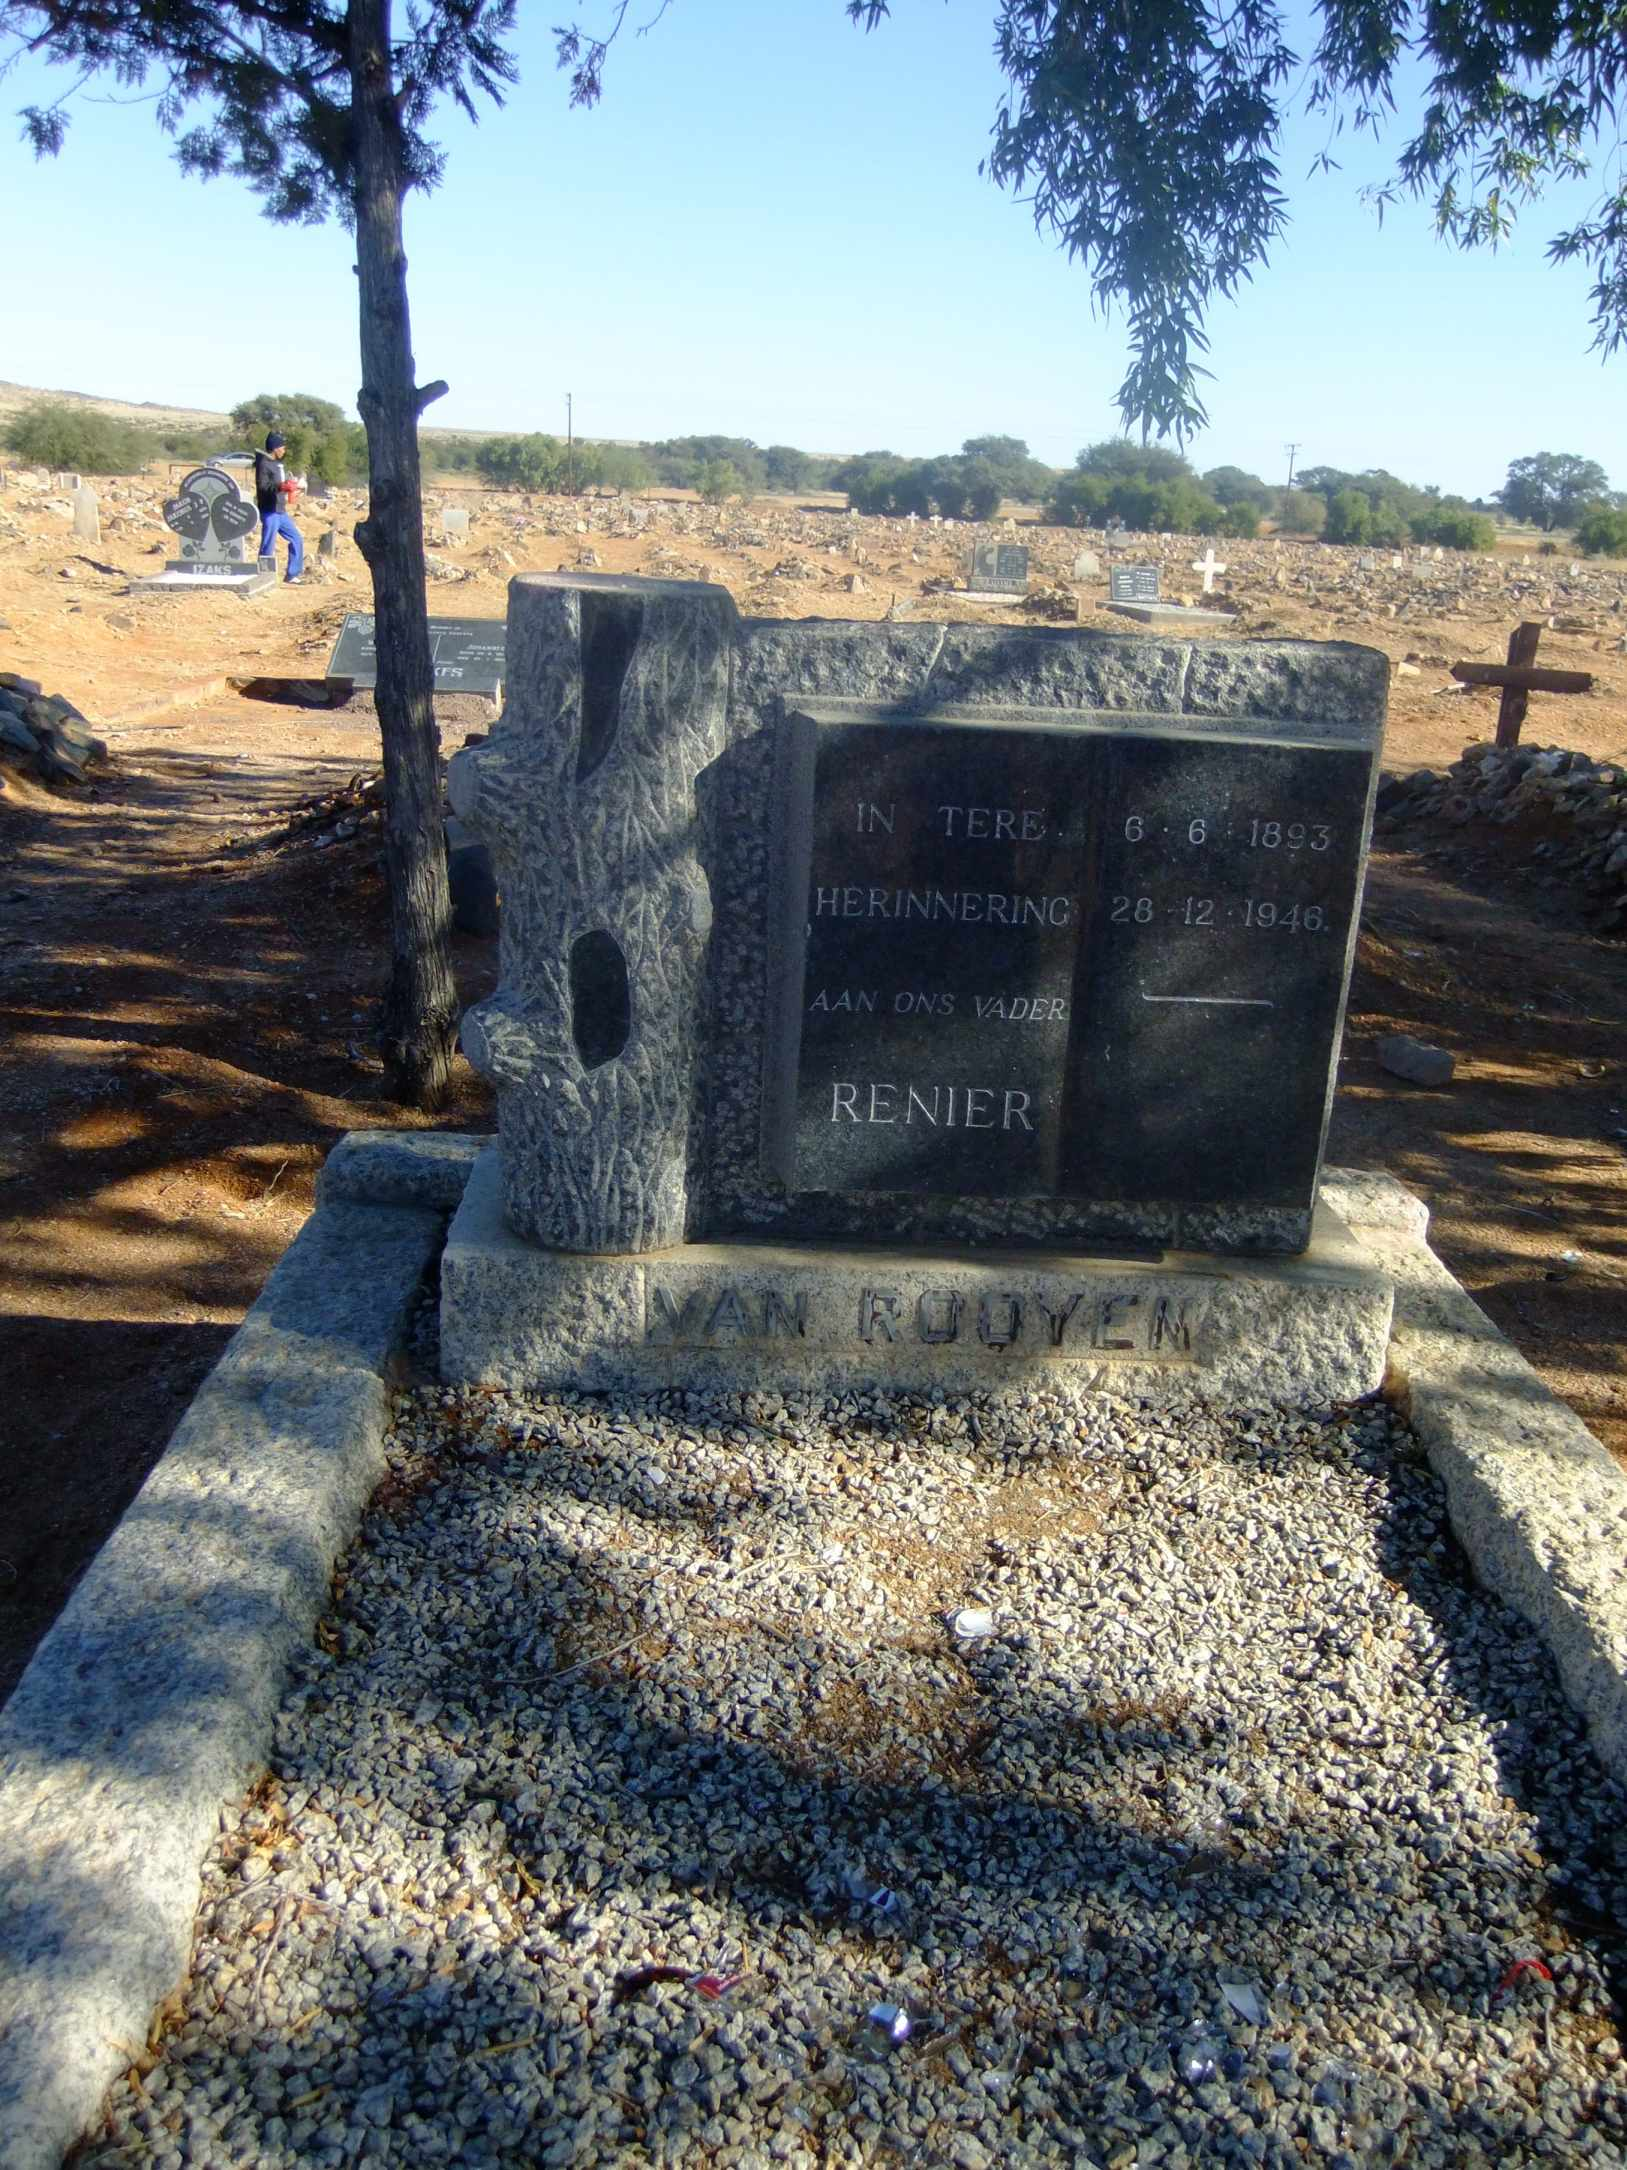 Van Rooyen, Renier bonr 06 June 1893 died 28 December 1946